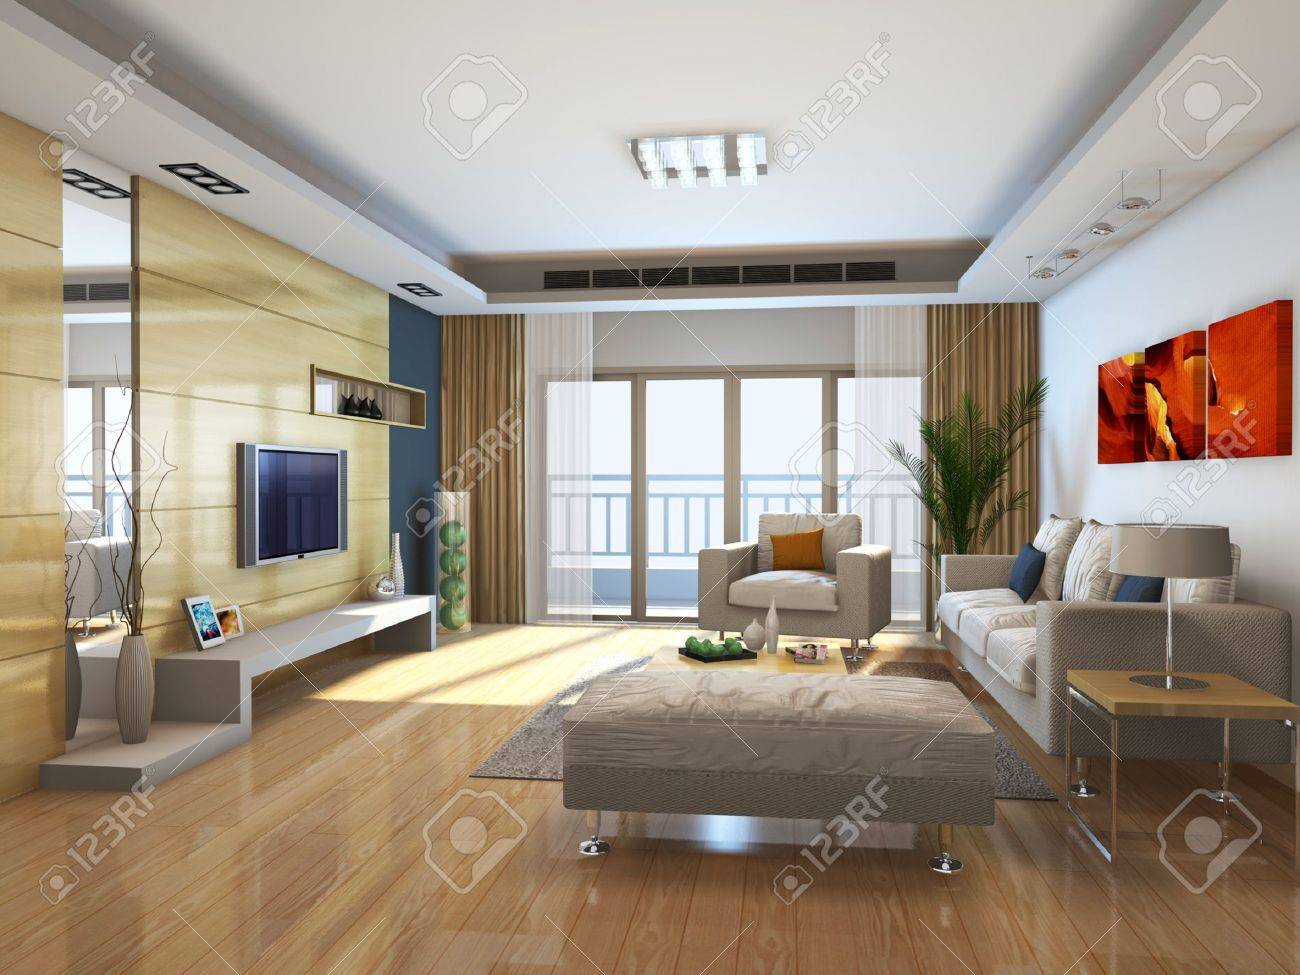 Interior Fashionable Living-room Rendering Stock Photo, Picture And ...